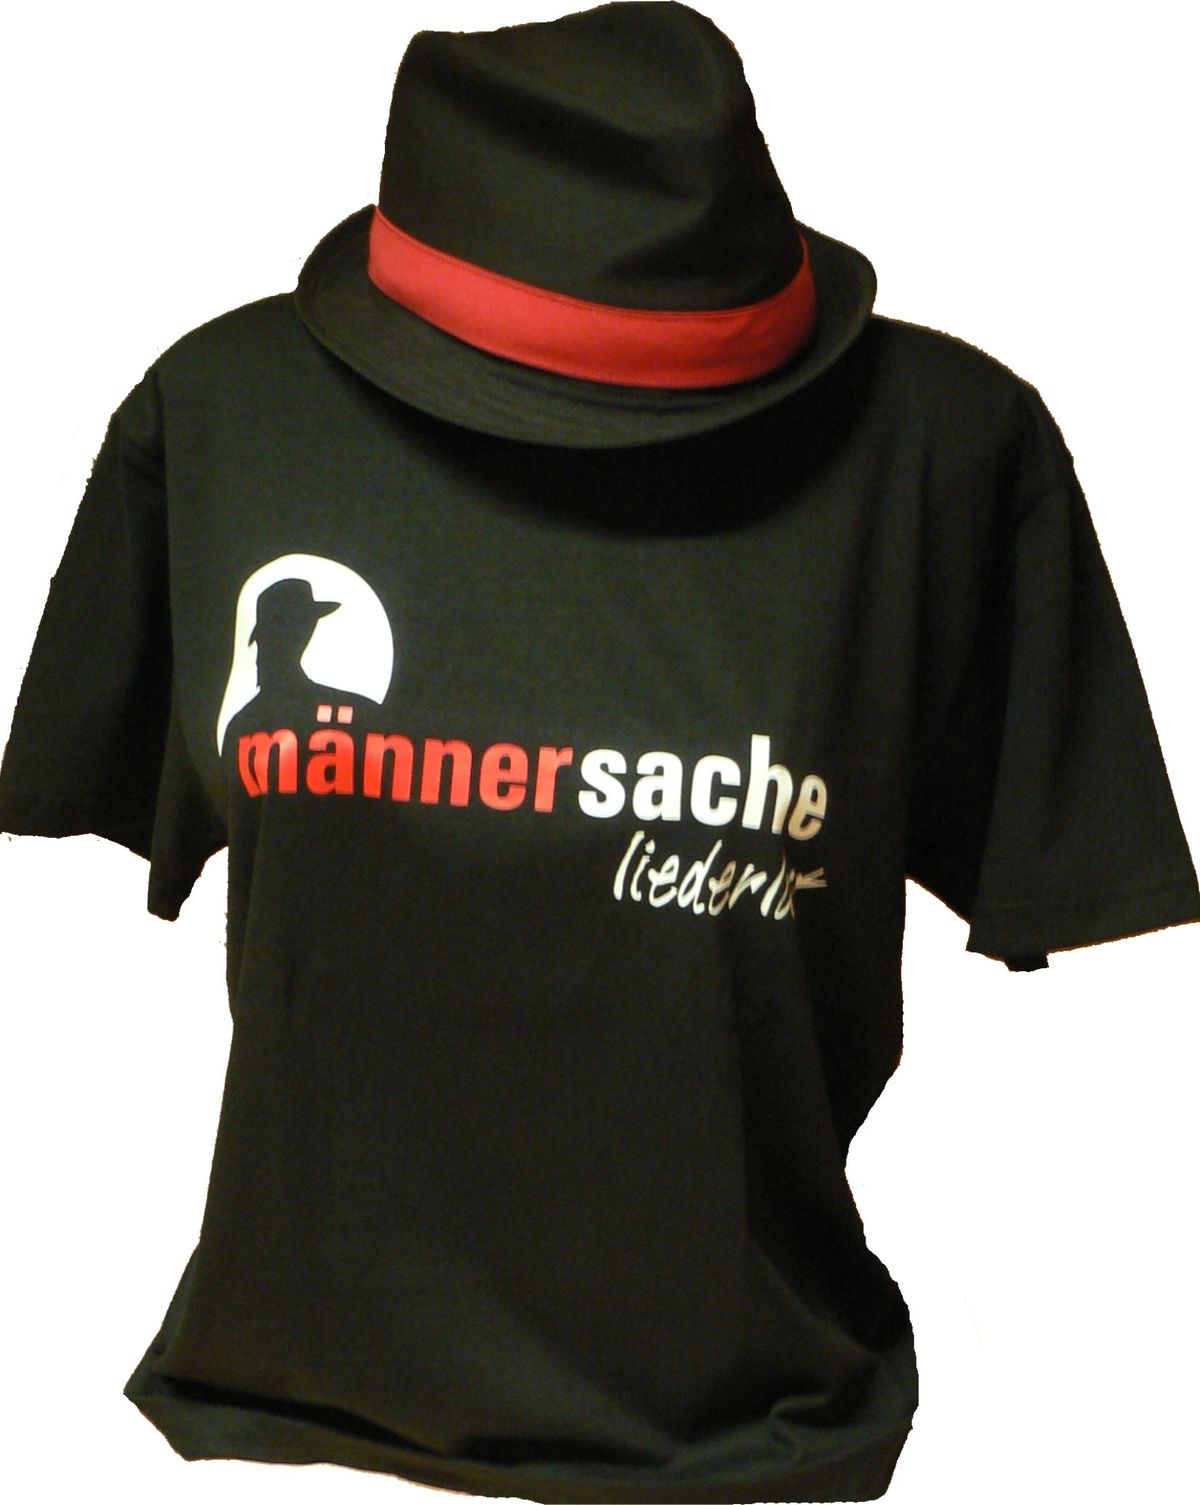 T-Shirt mit Flexdruck